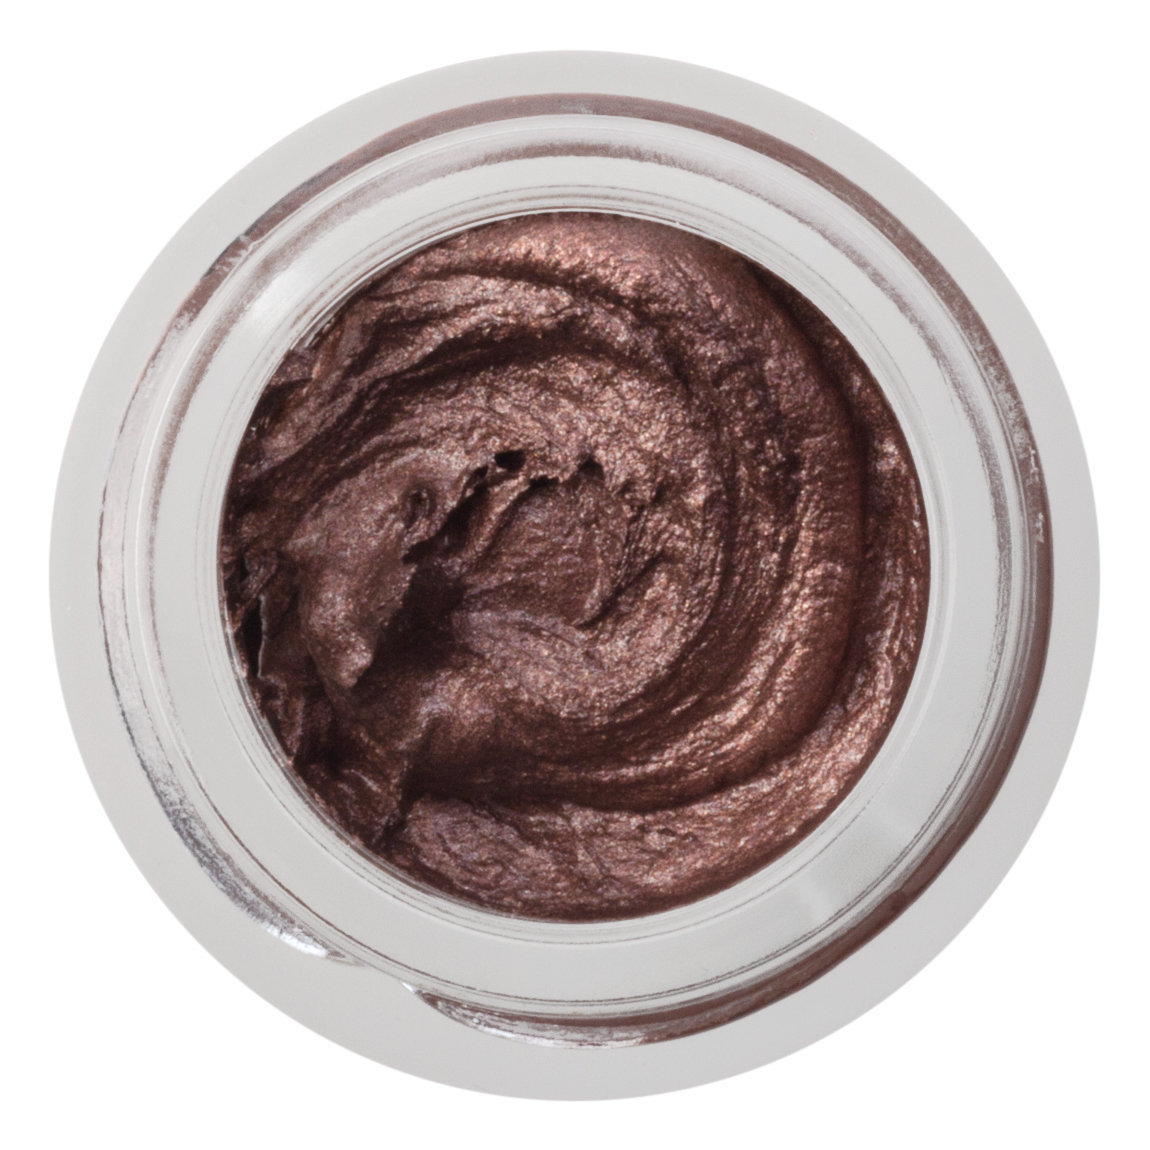 Charlotte Tilbury Eyes to Mesmerise Chocolate Bronze alternative view 1.